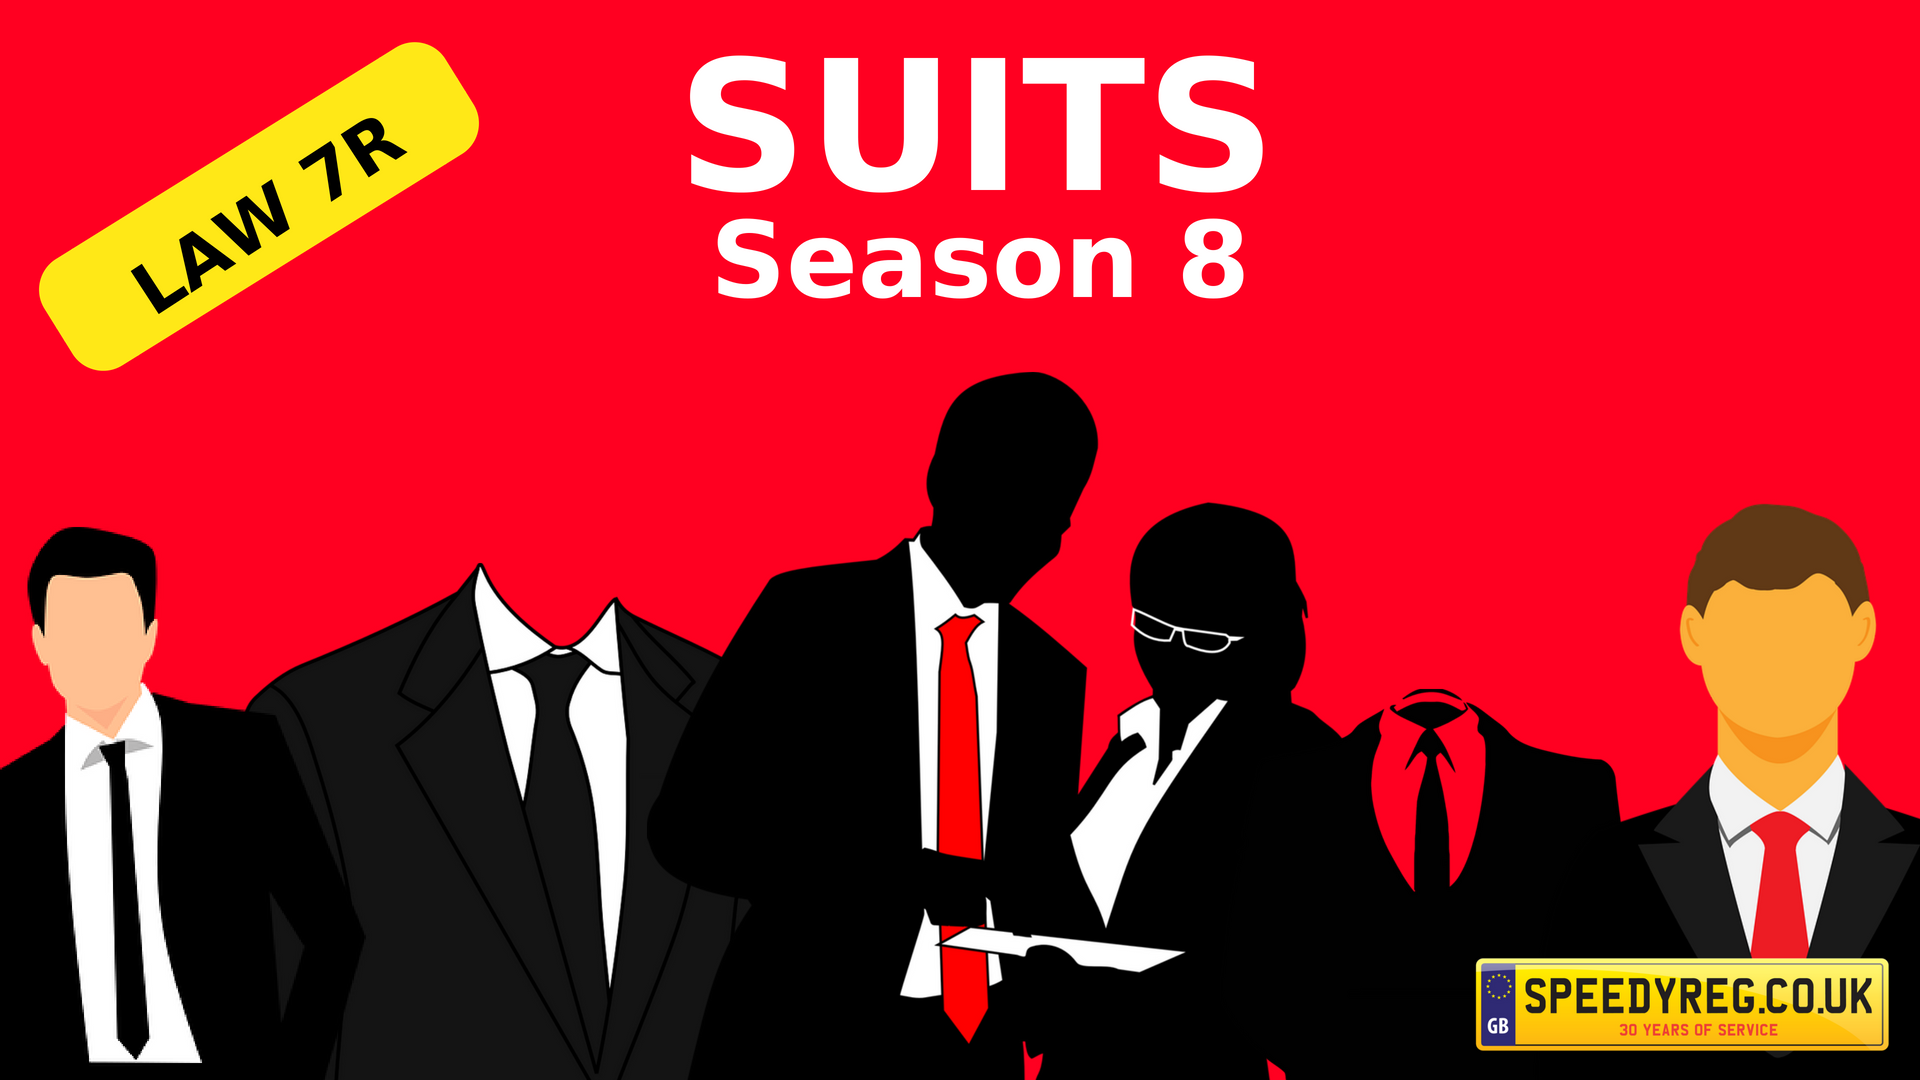 Suits Returns to Netflix | Season 8 | Suits Facts & Number Plates